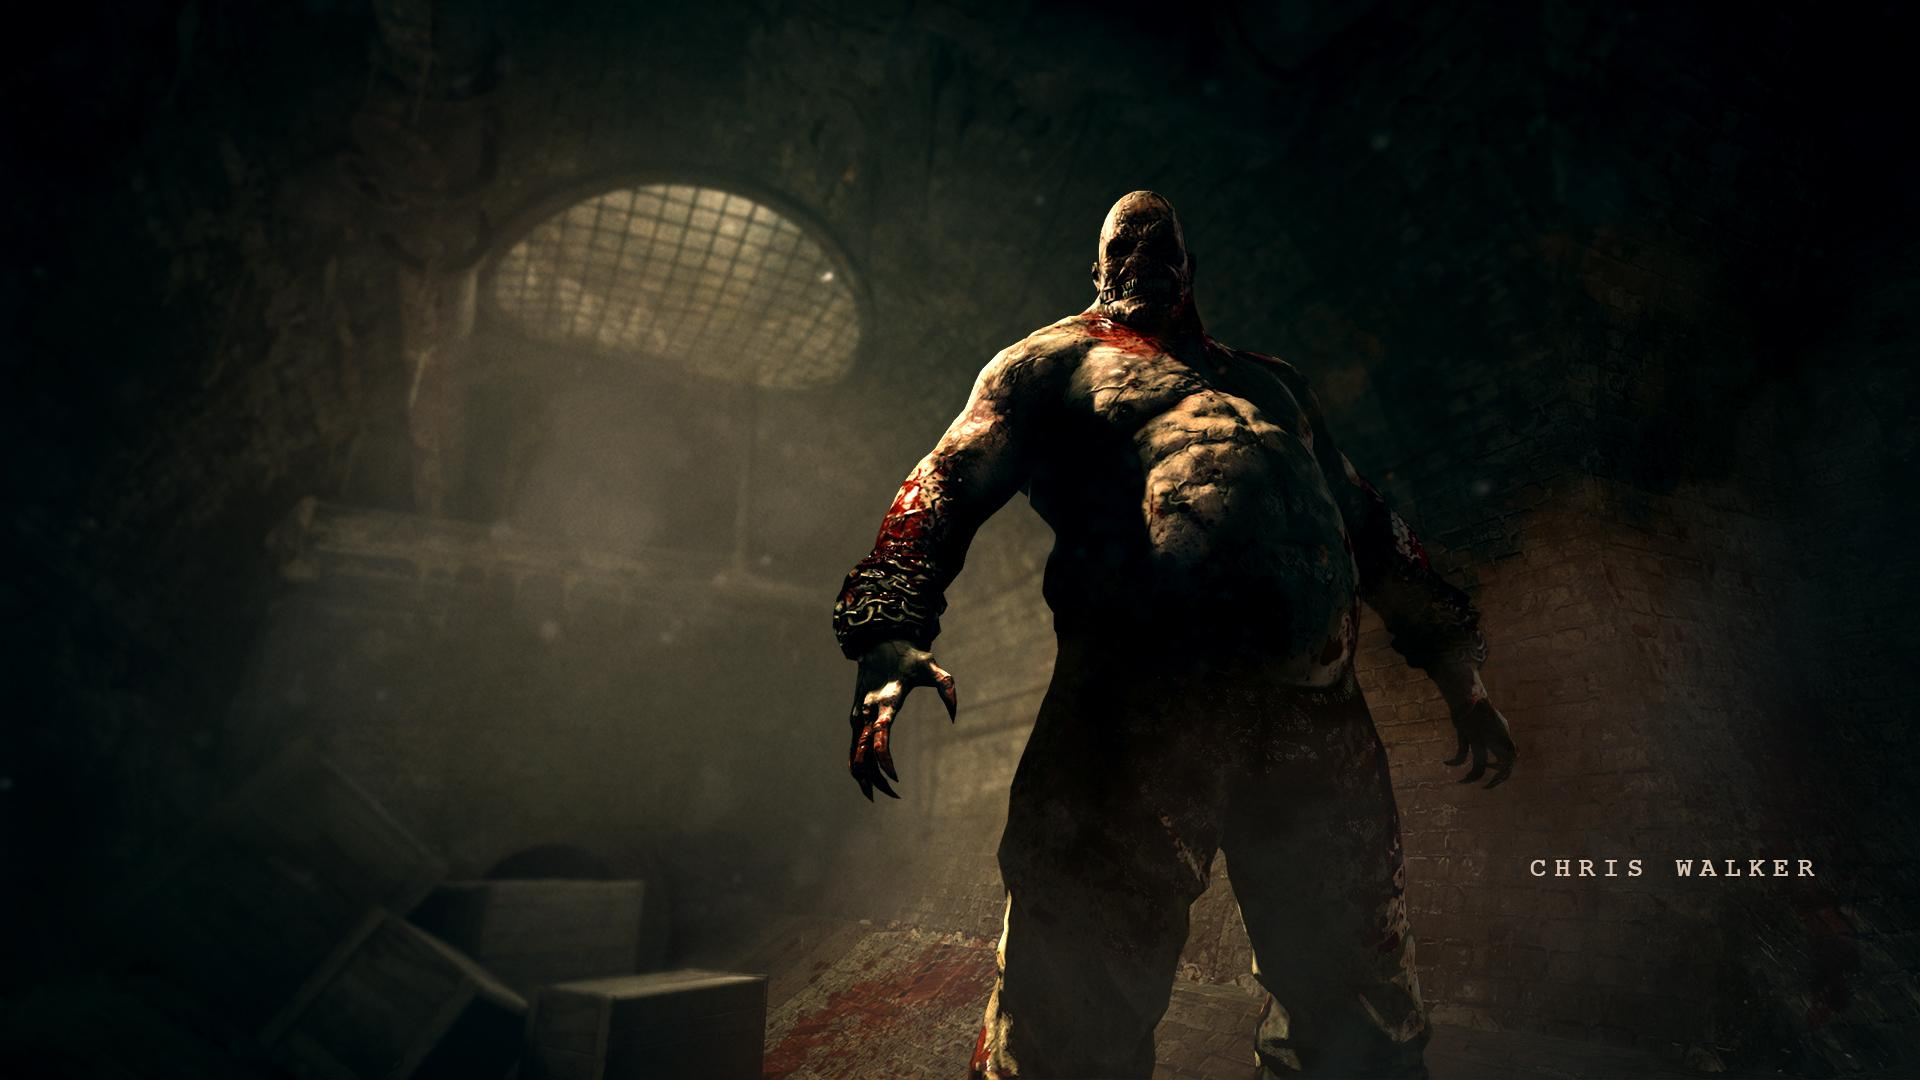 838 Creepy HD Wallpapers | Backgrounds - Wallpaper Abyss